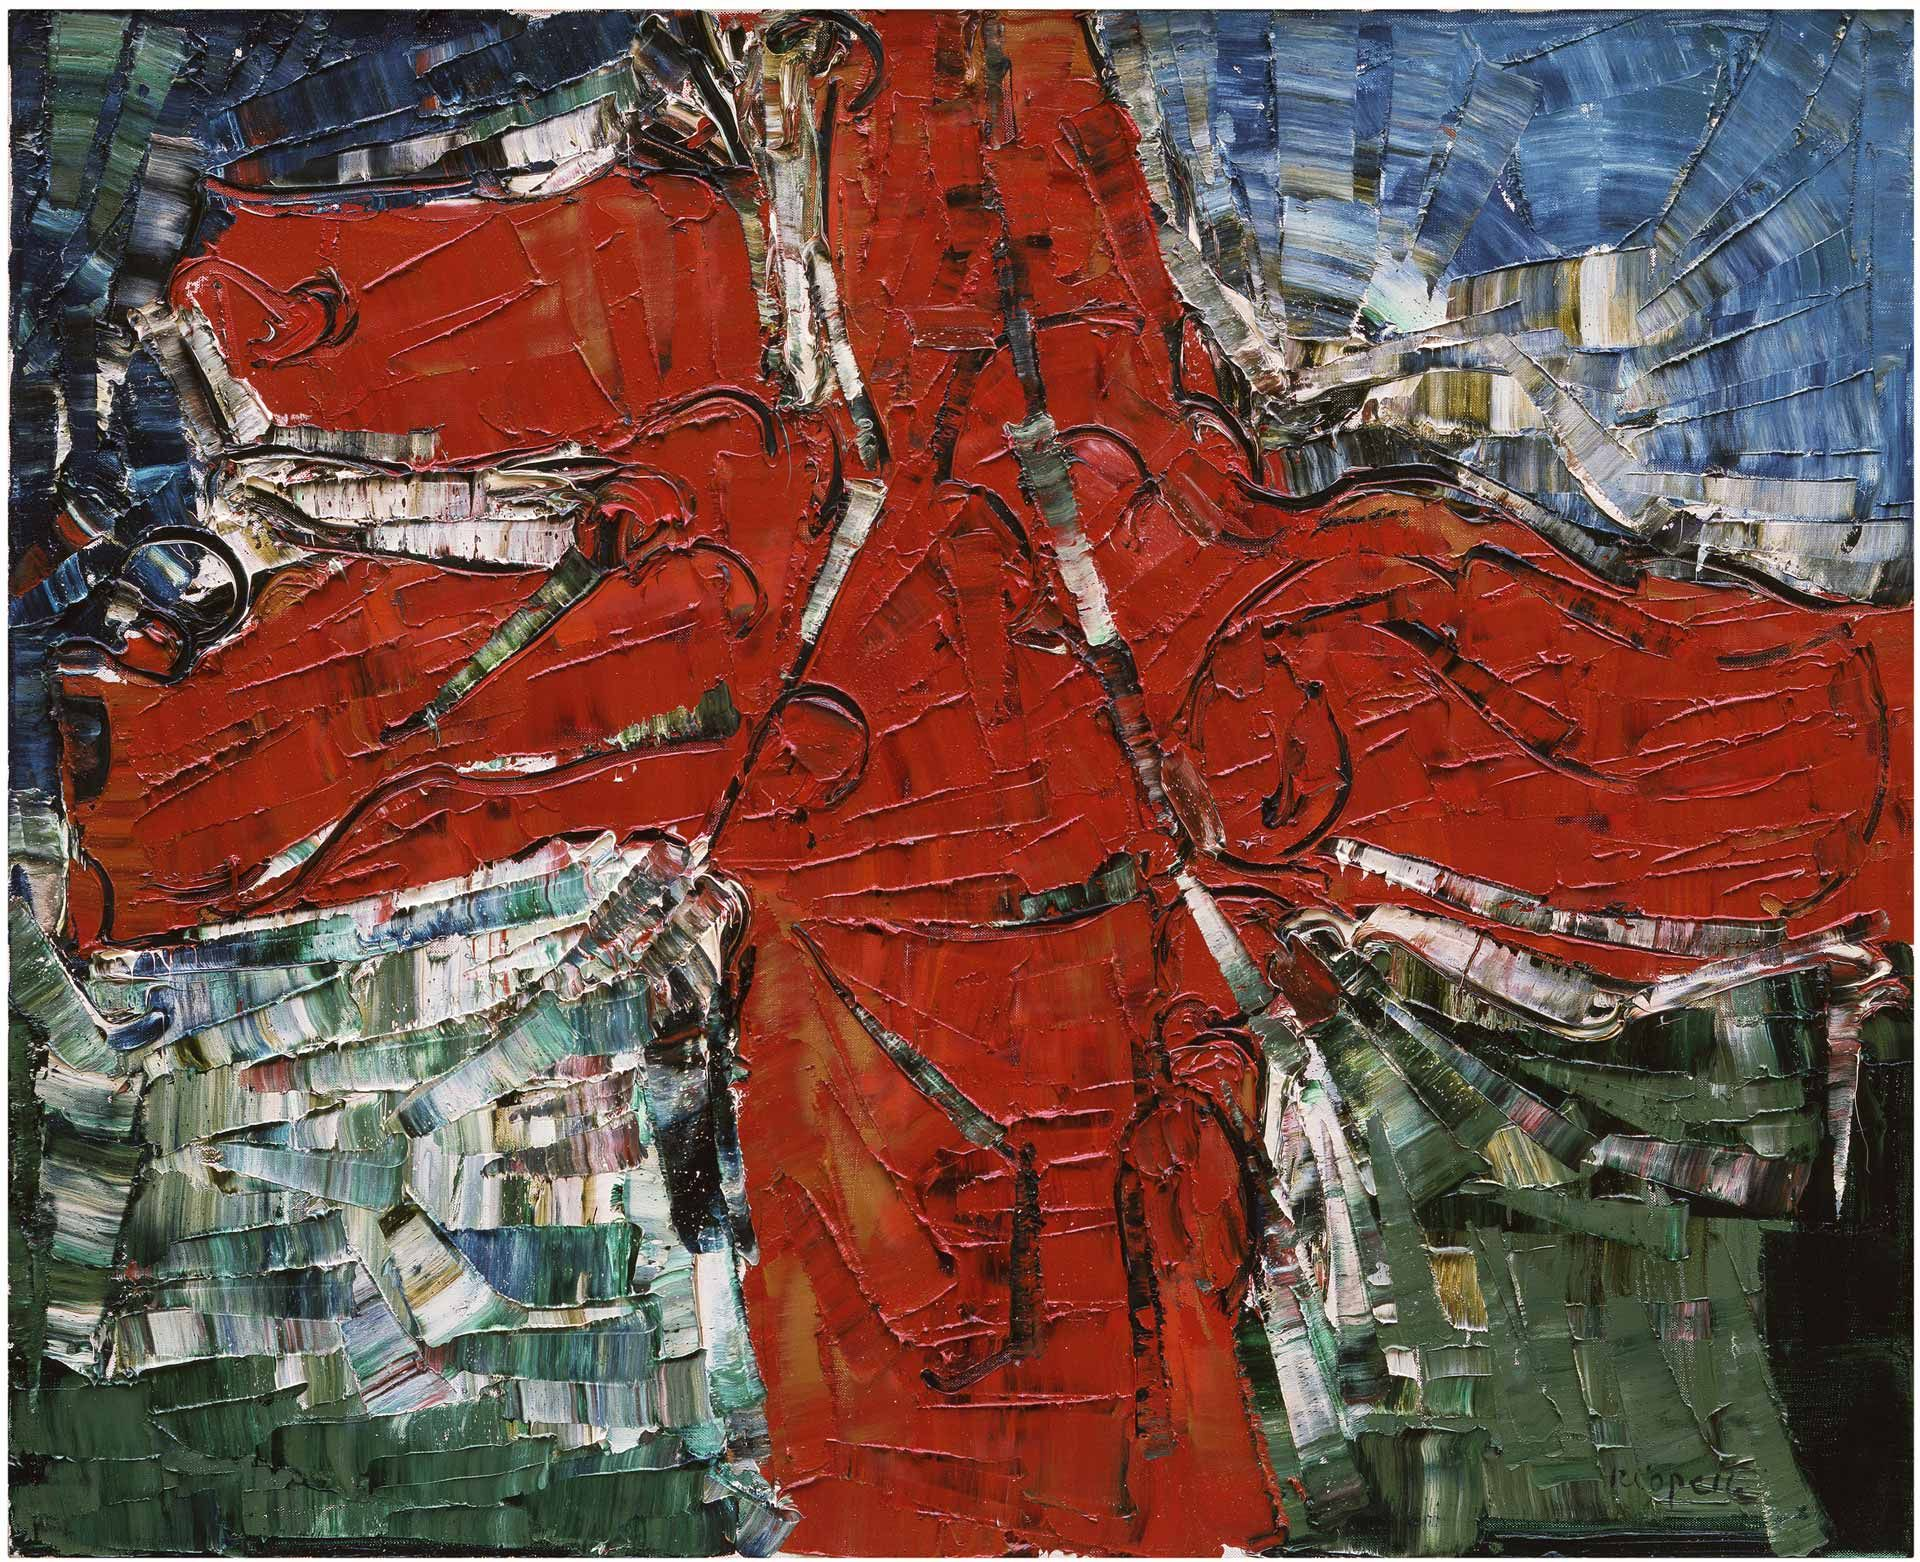 Jean Paul Riopelle (1923-2002), Inuit, 1977, oil on canvas, 82 x 101 cm. Collection of Charles Dutoit, Montreal. © Estate of Jean Paul Riopelle / SOCAN (2020). Photo Archives Catalogue raisonné Jean Paul Riopelle